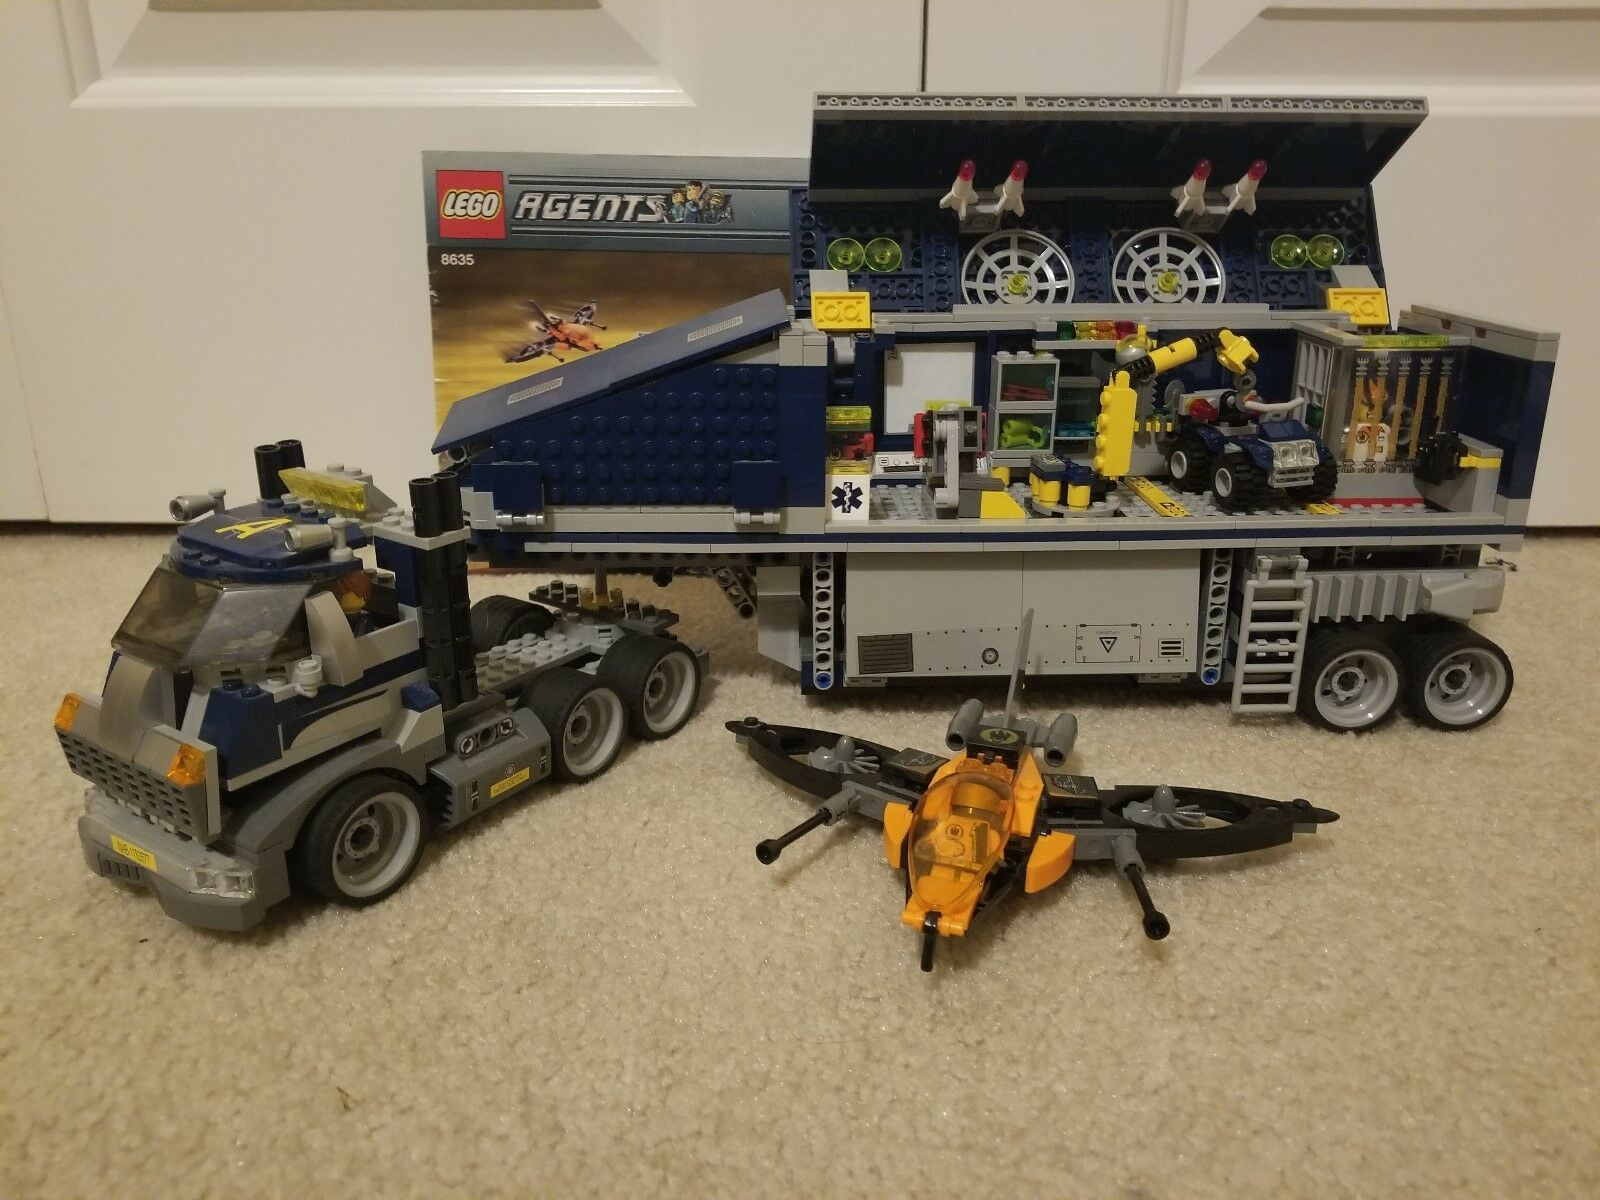 LEGO Agents Mobile Command Center  8635  - 100% complete